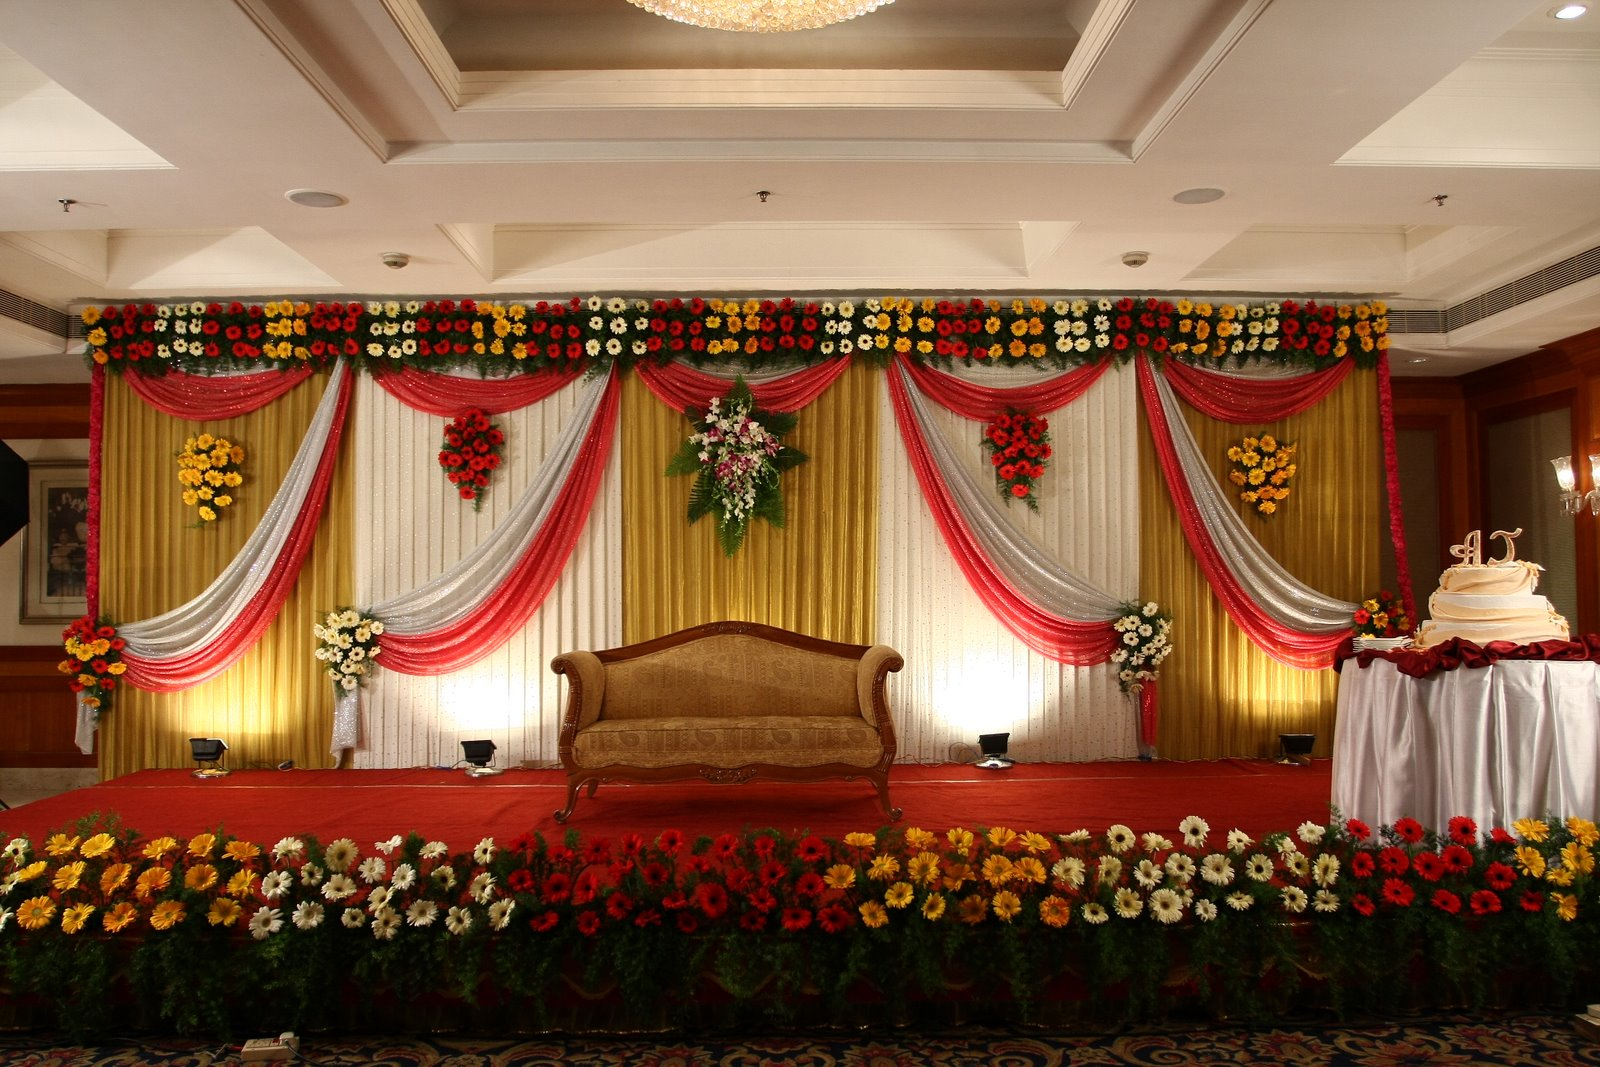 about marriage marriage decoration photos 2013 marriage On decoration